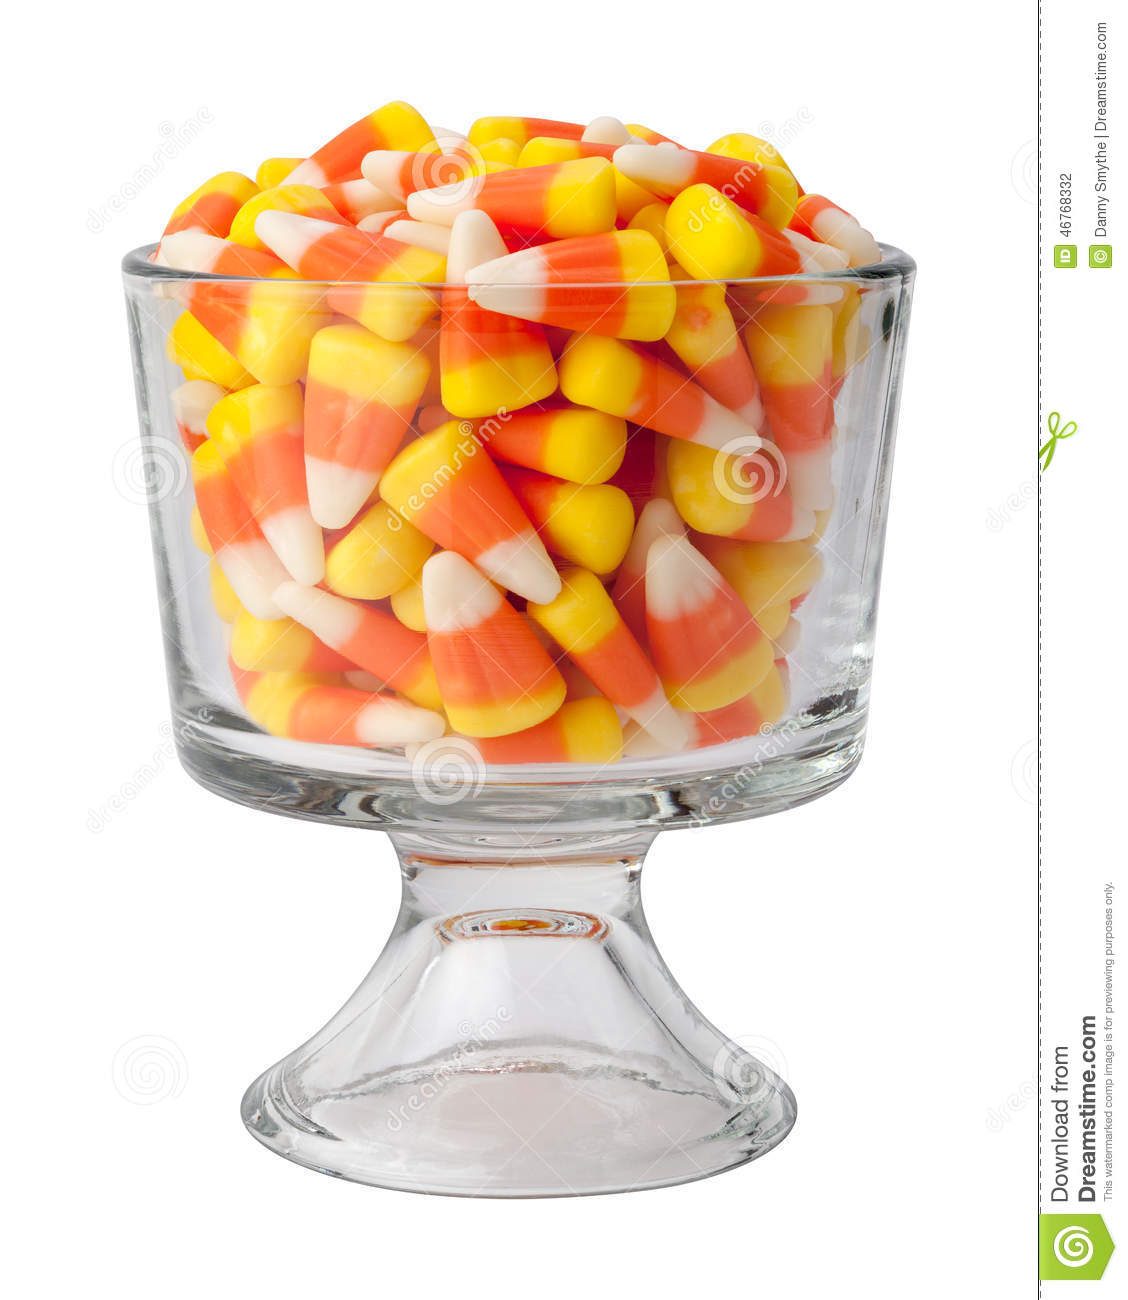 Candy Corn in a Dessert Glass  sc 1 st  Dreamstime.com & Candy Corn In A Dessert Glass Stock Photo - Image of ingredient ...